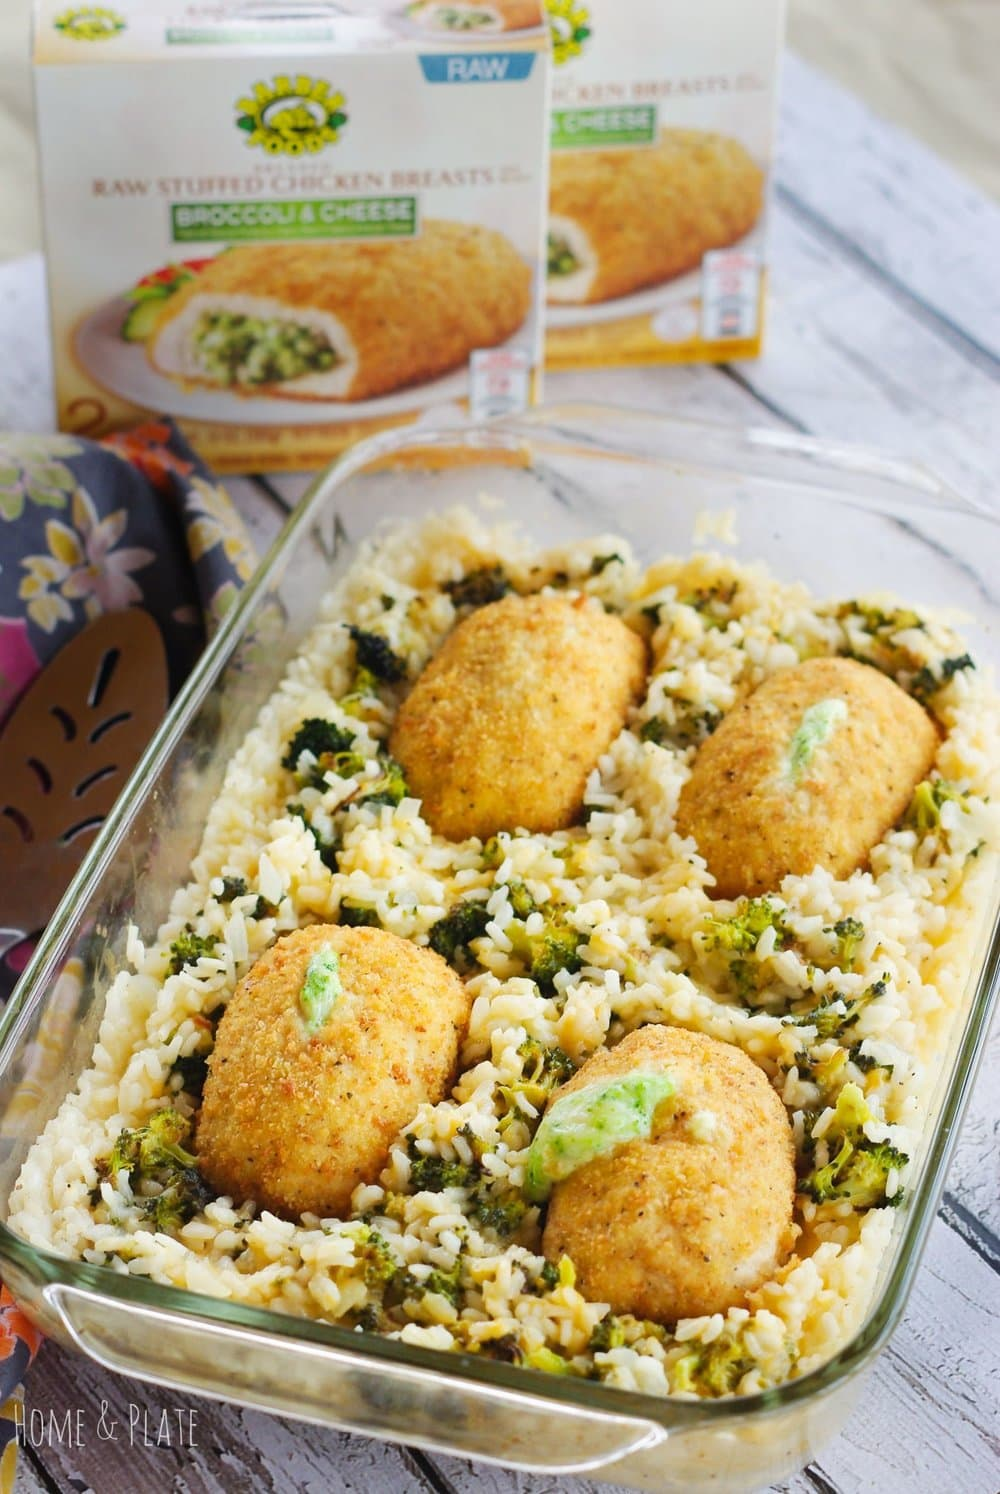 Oven Baked Broccoli & Cheddar Risotto